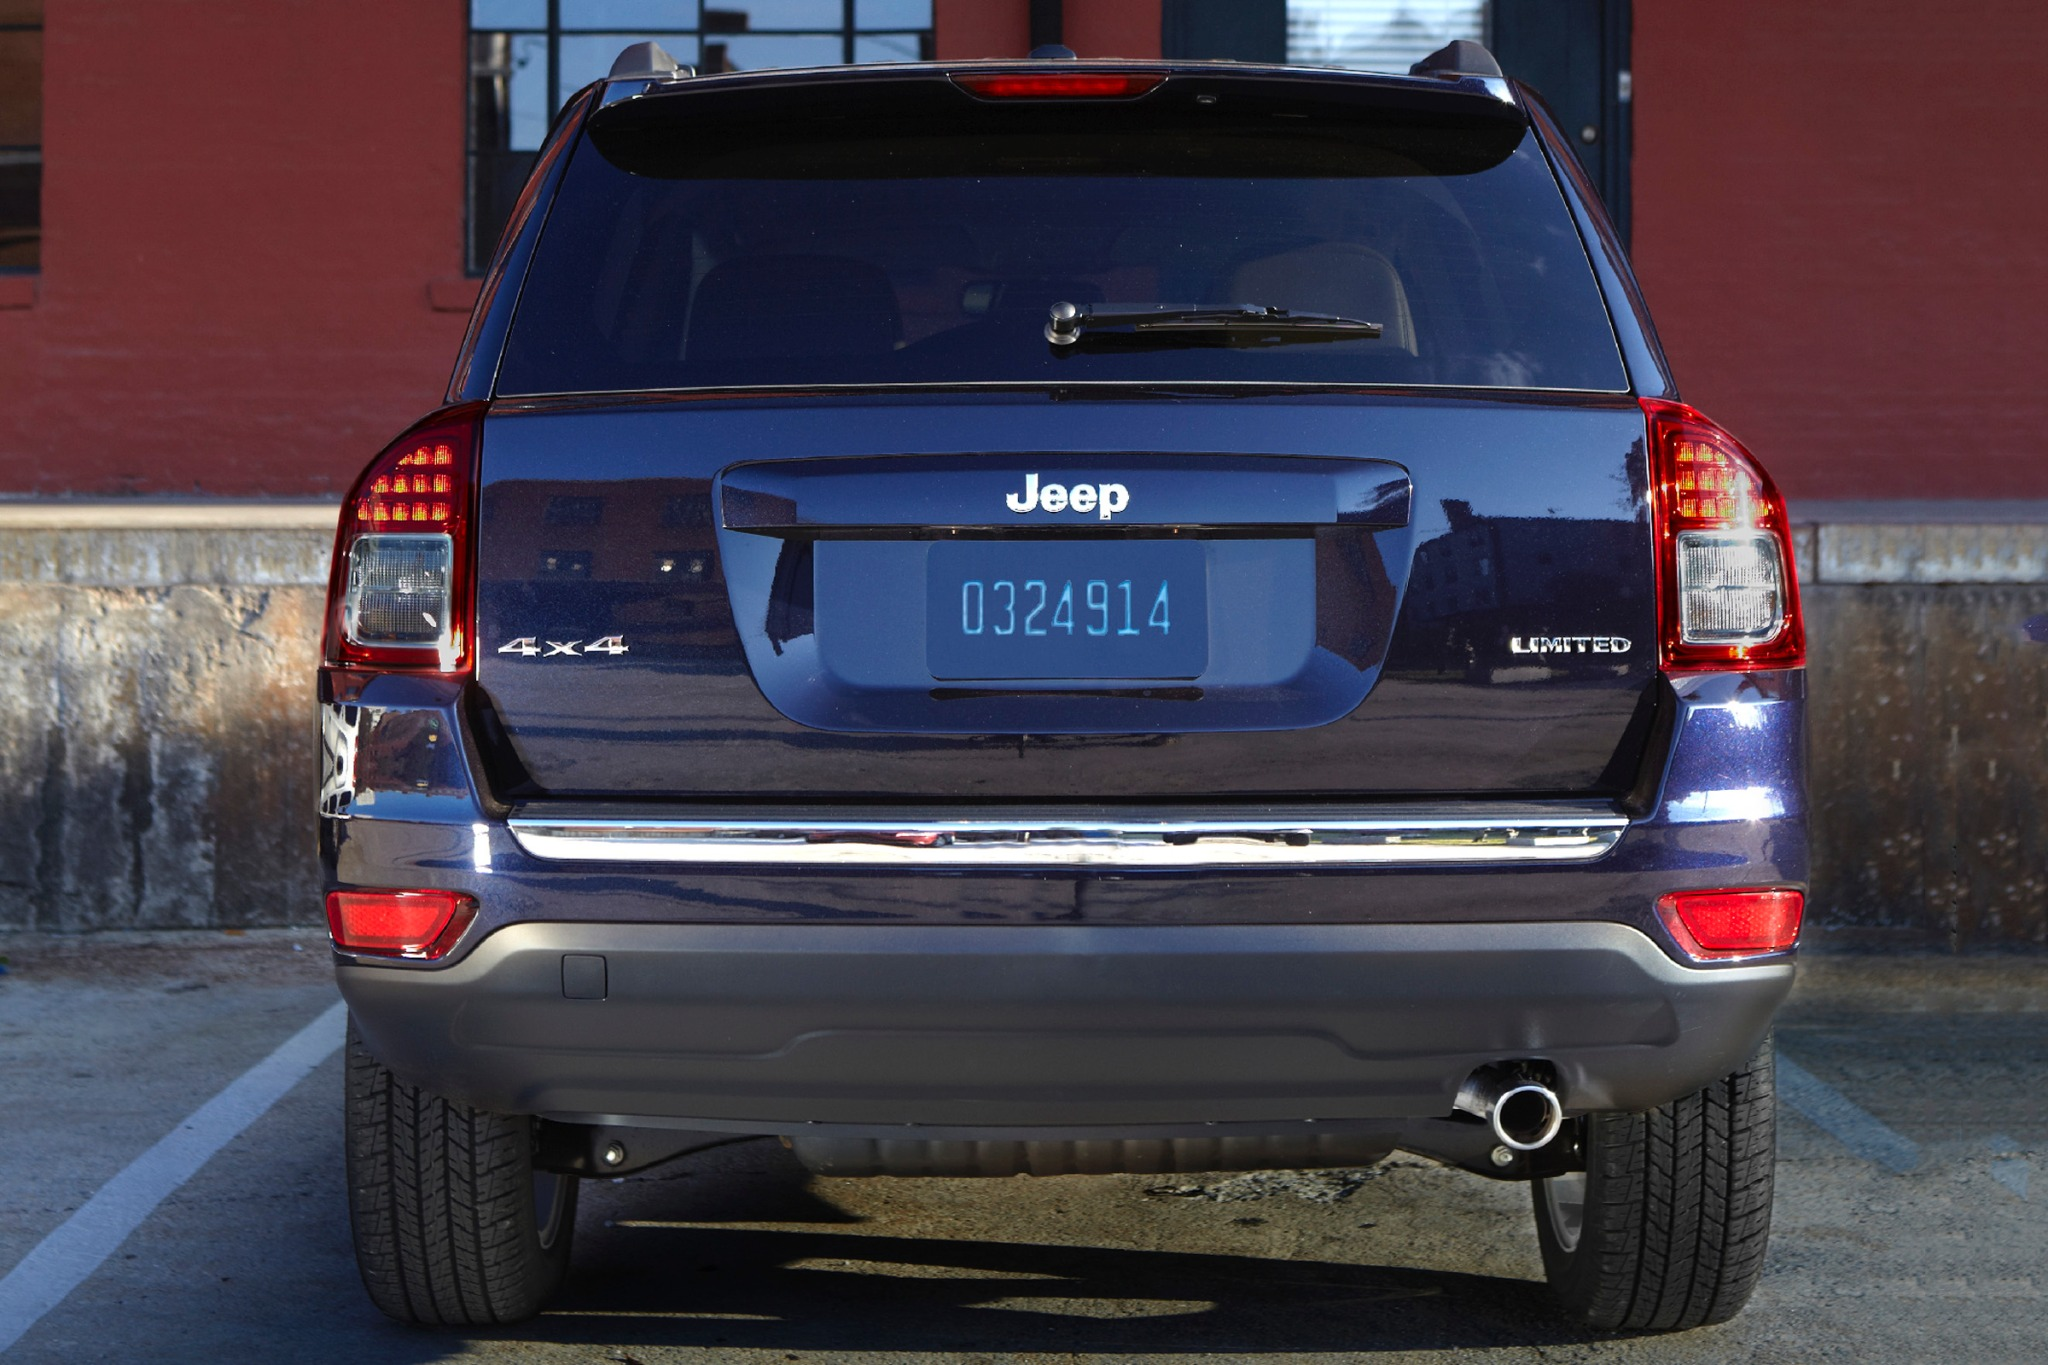 2014 Jeep Compass Limited exterior #8